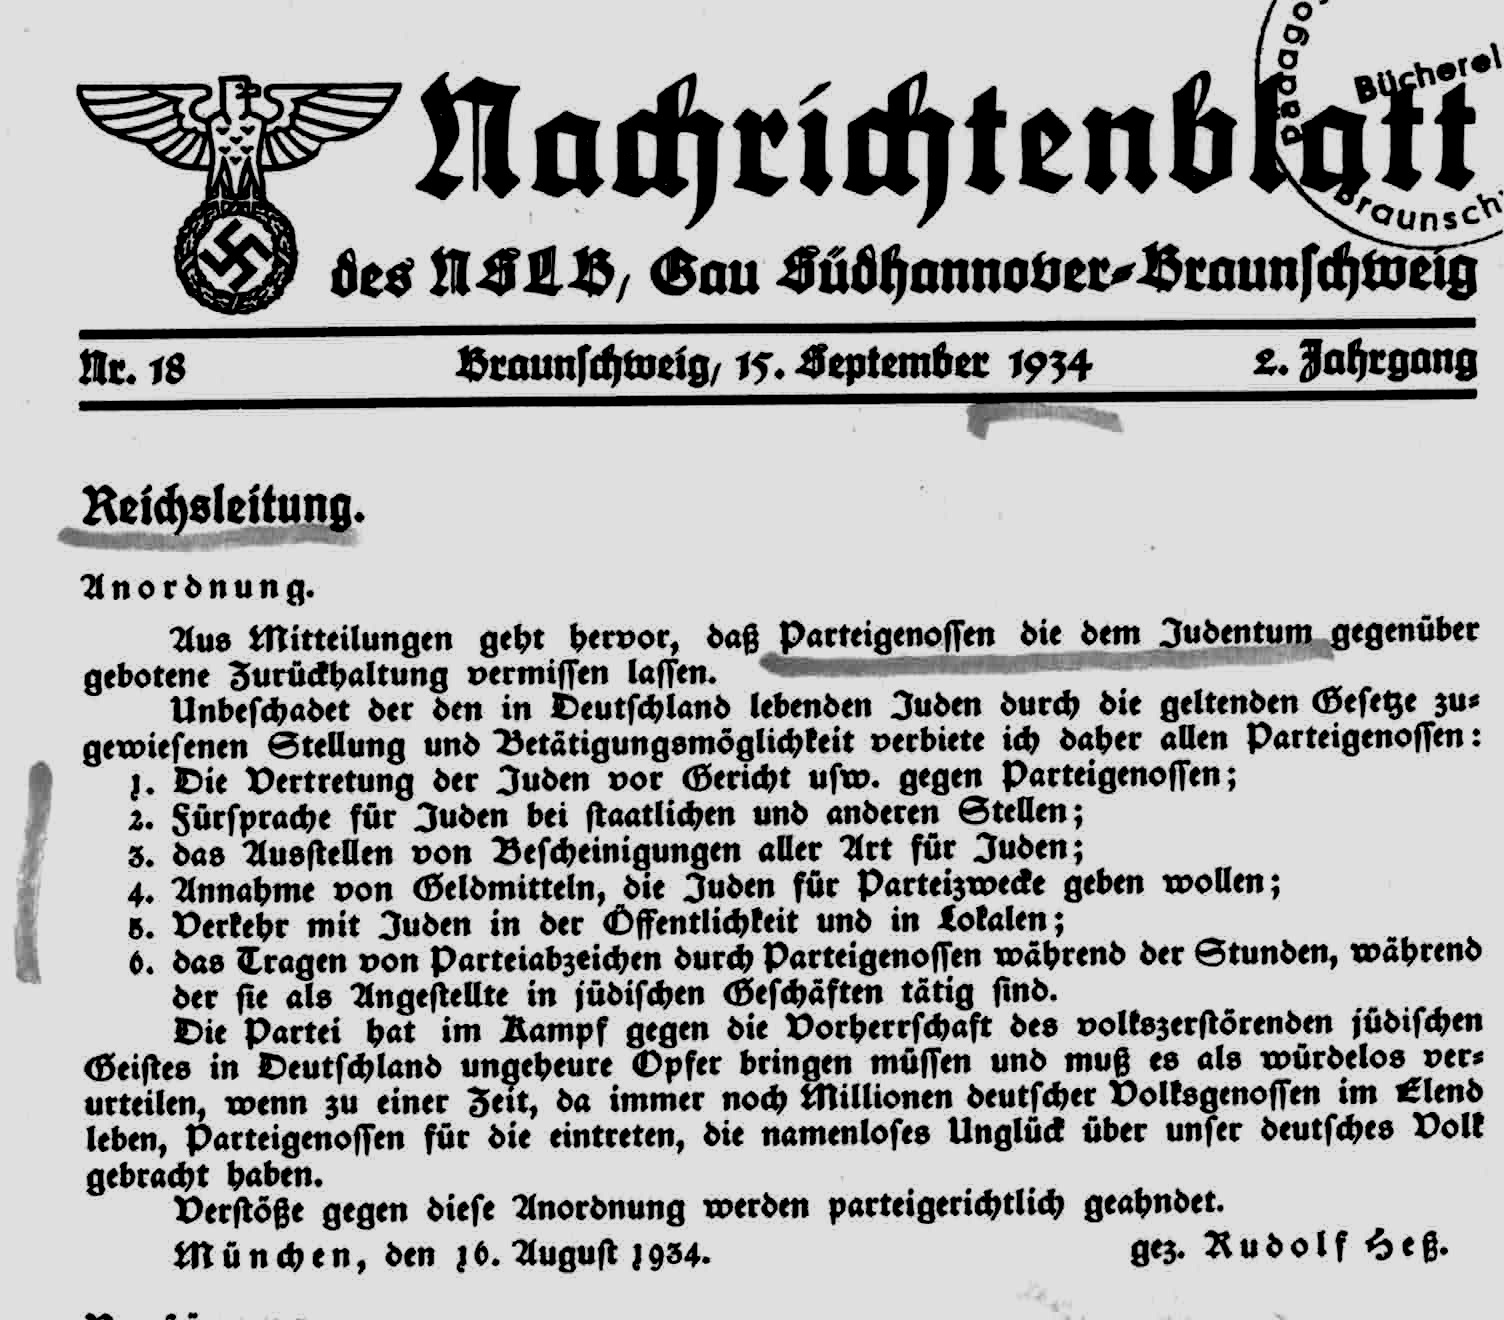 Figure 13: Avoidance of Jews - Order for party members, by the Deputy Führer, Rudolf Hess (Reichsleitung), September 15, 1934.